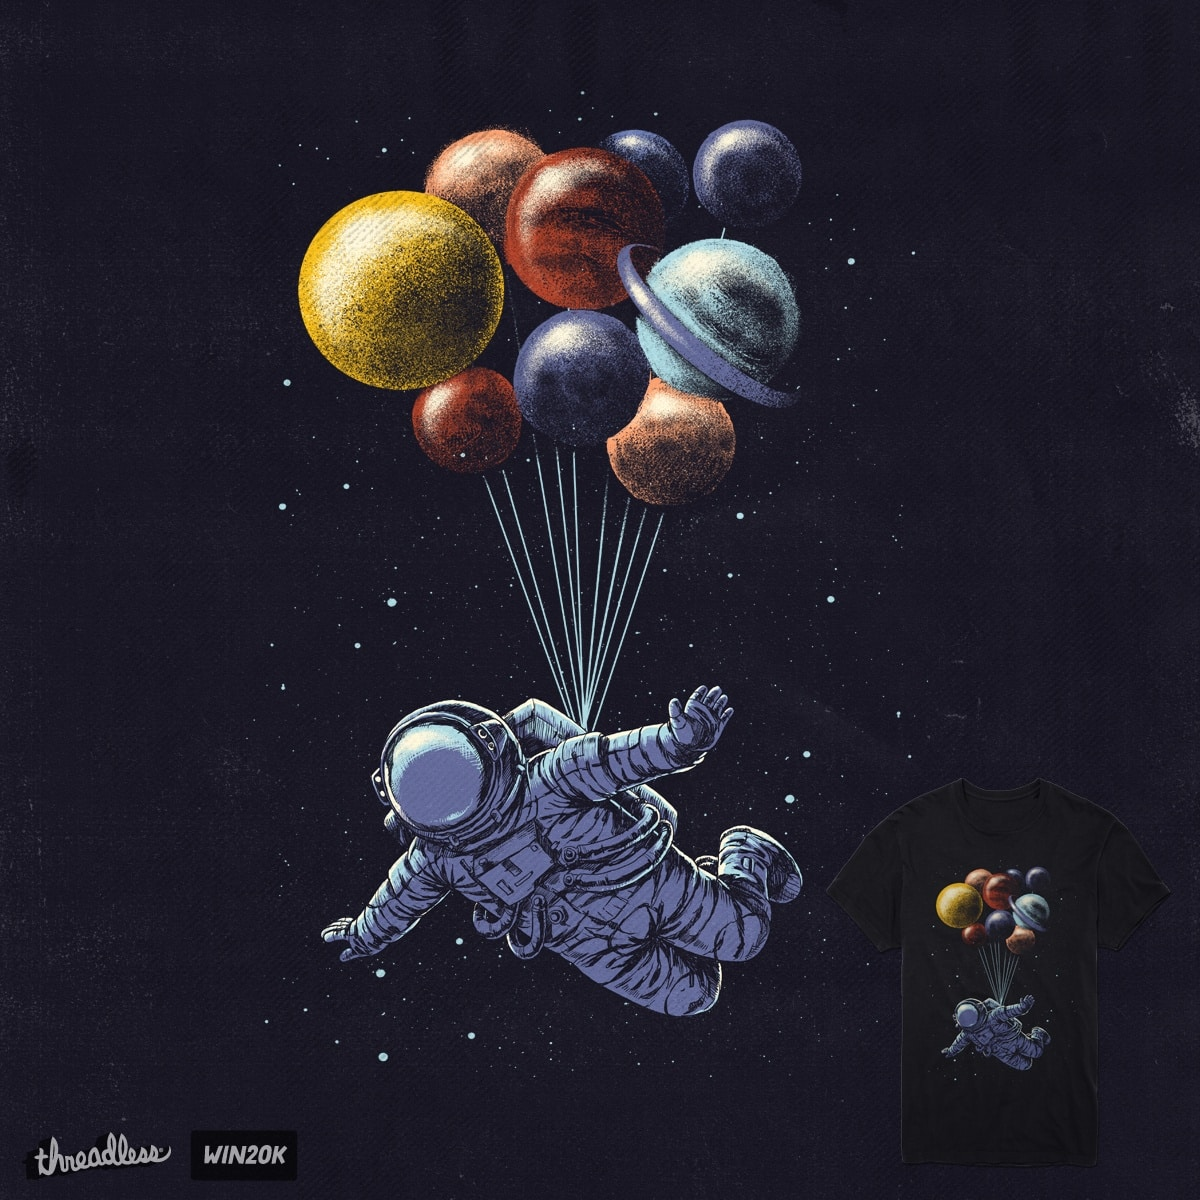 Space travel by digitalcarbine on Threadless